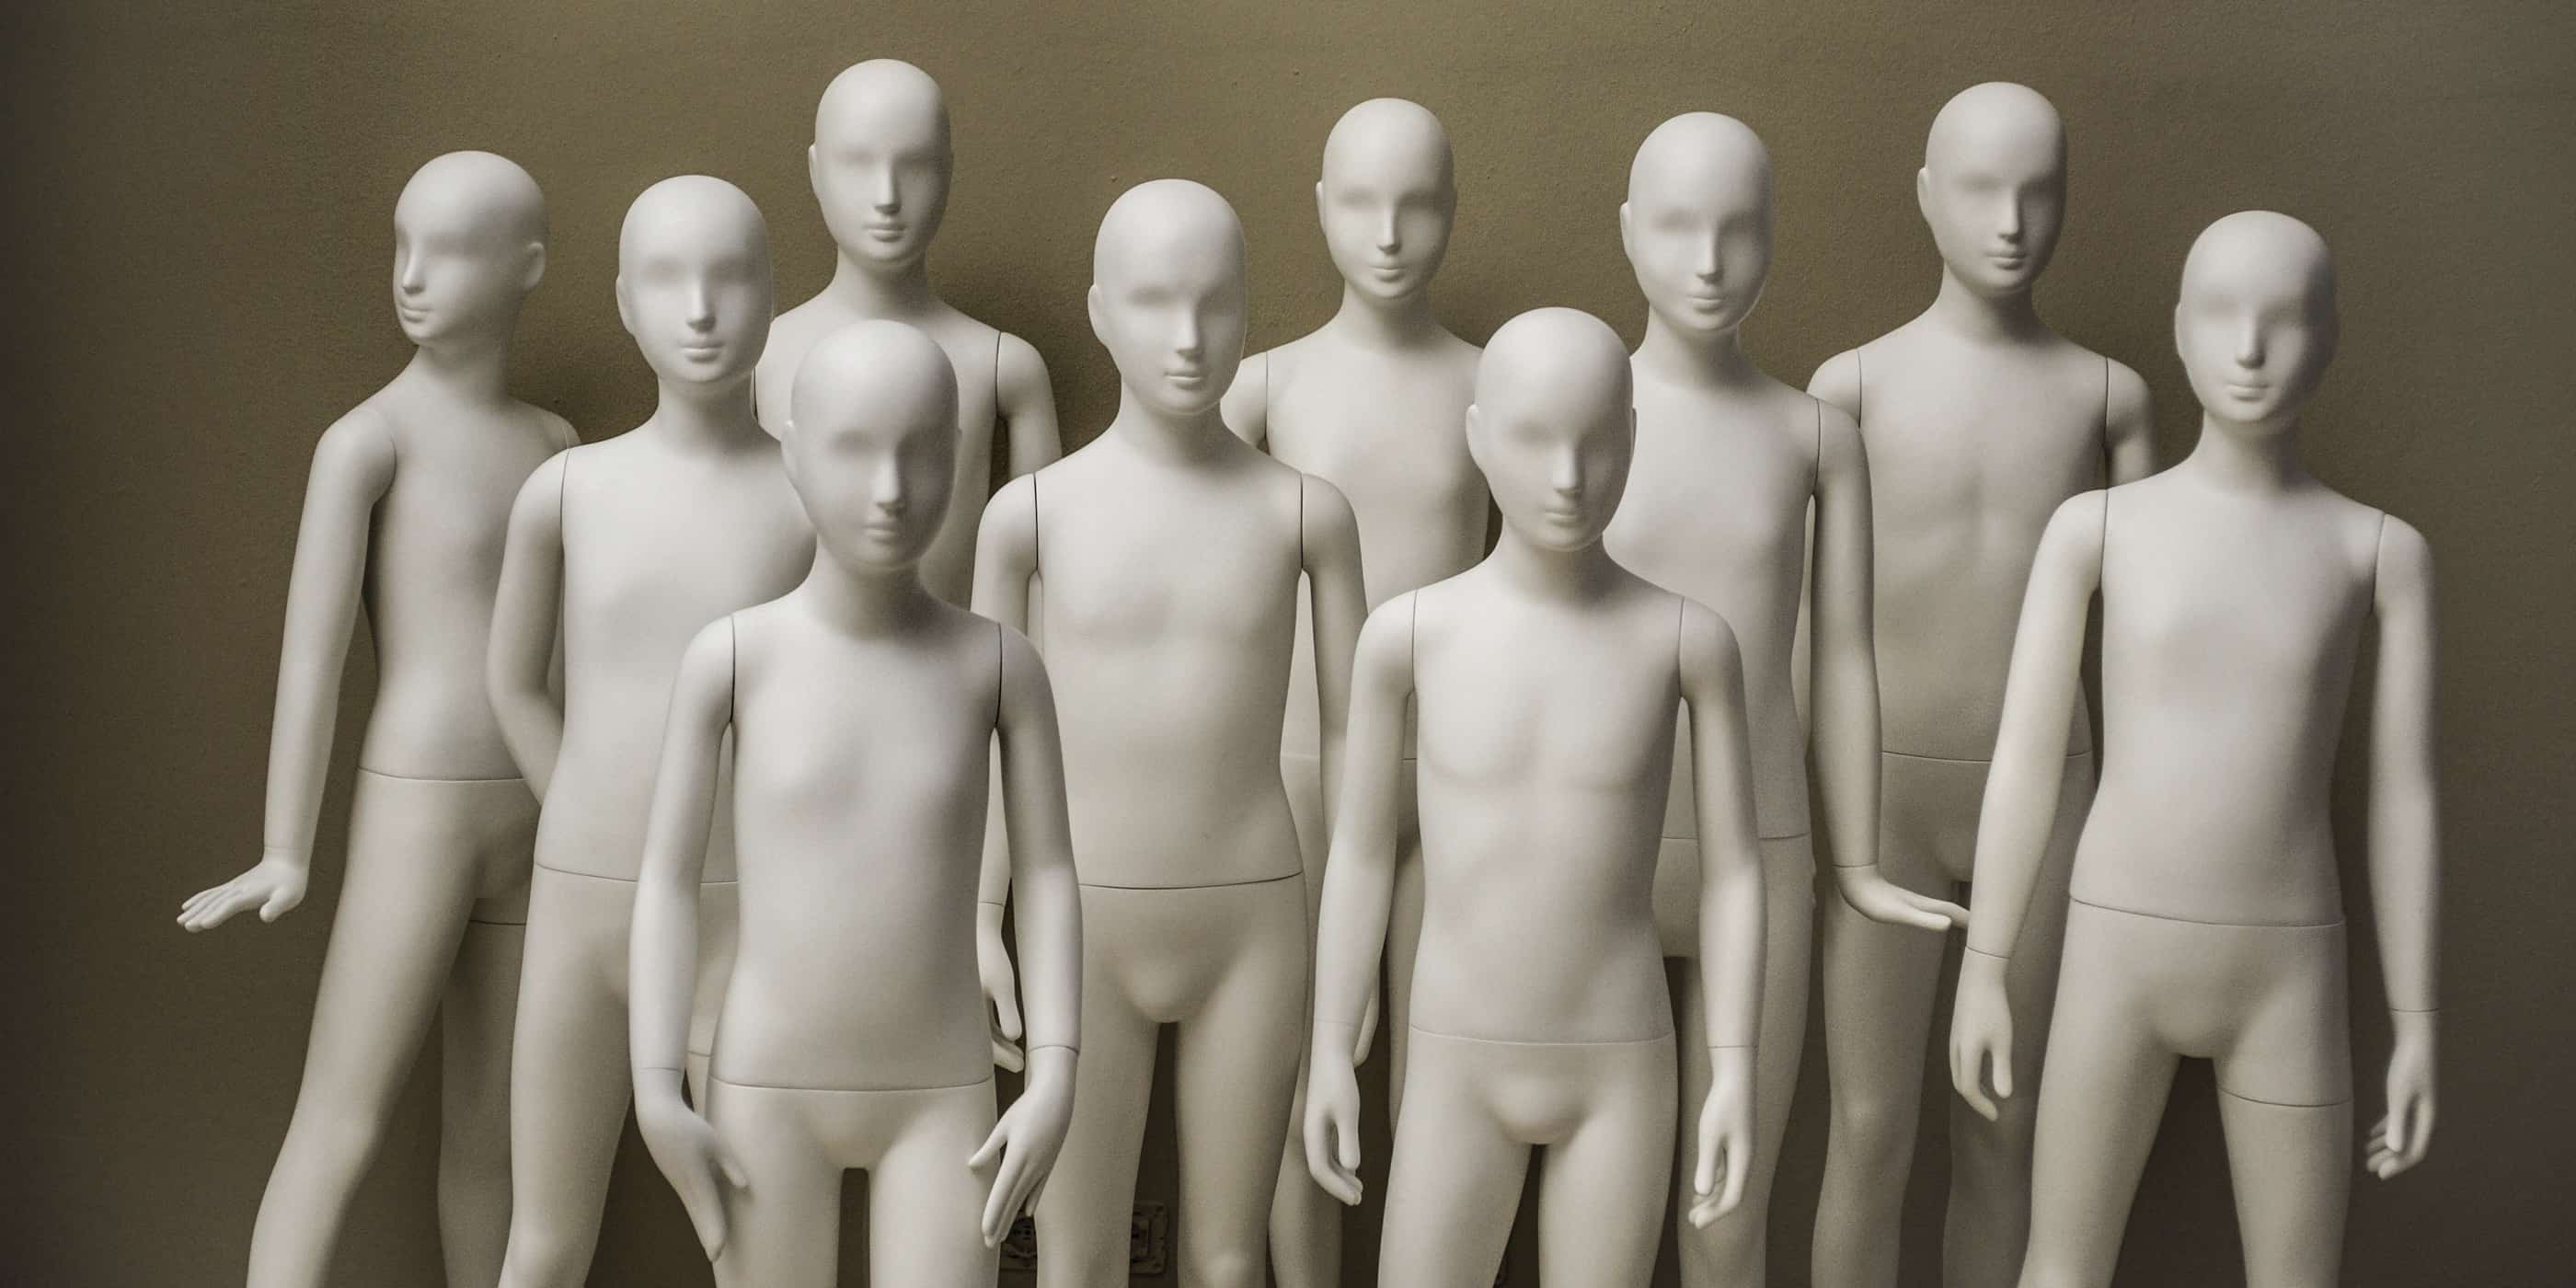 bambini 4000 mannequins 07